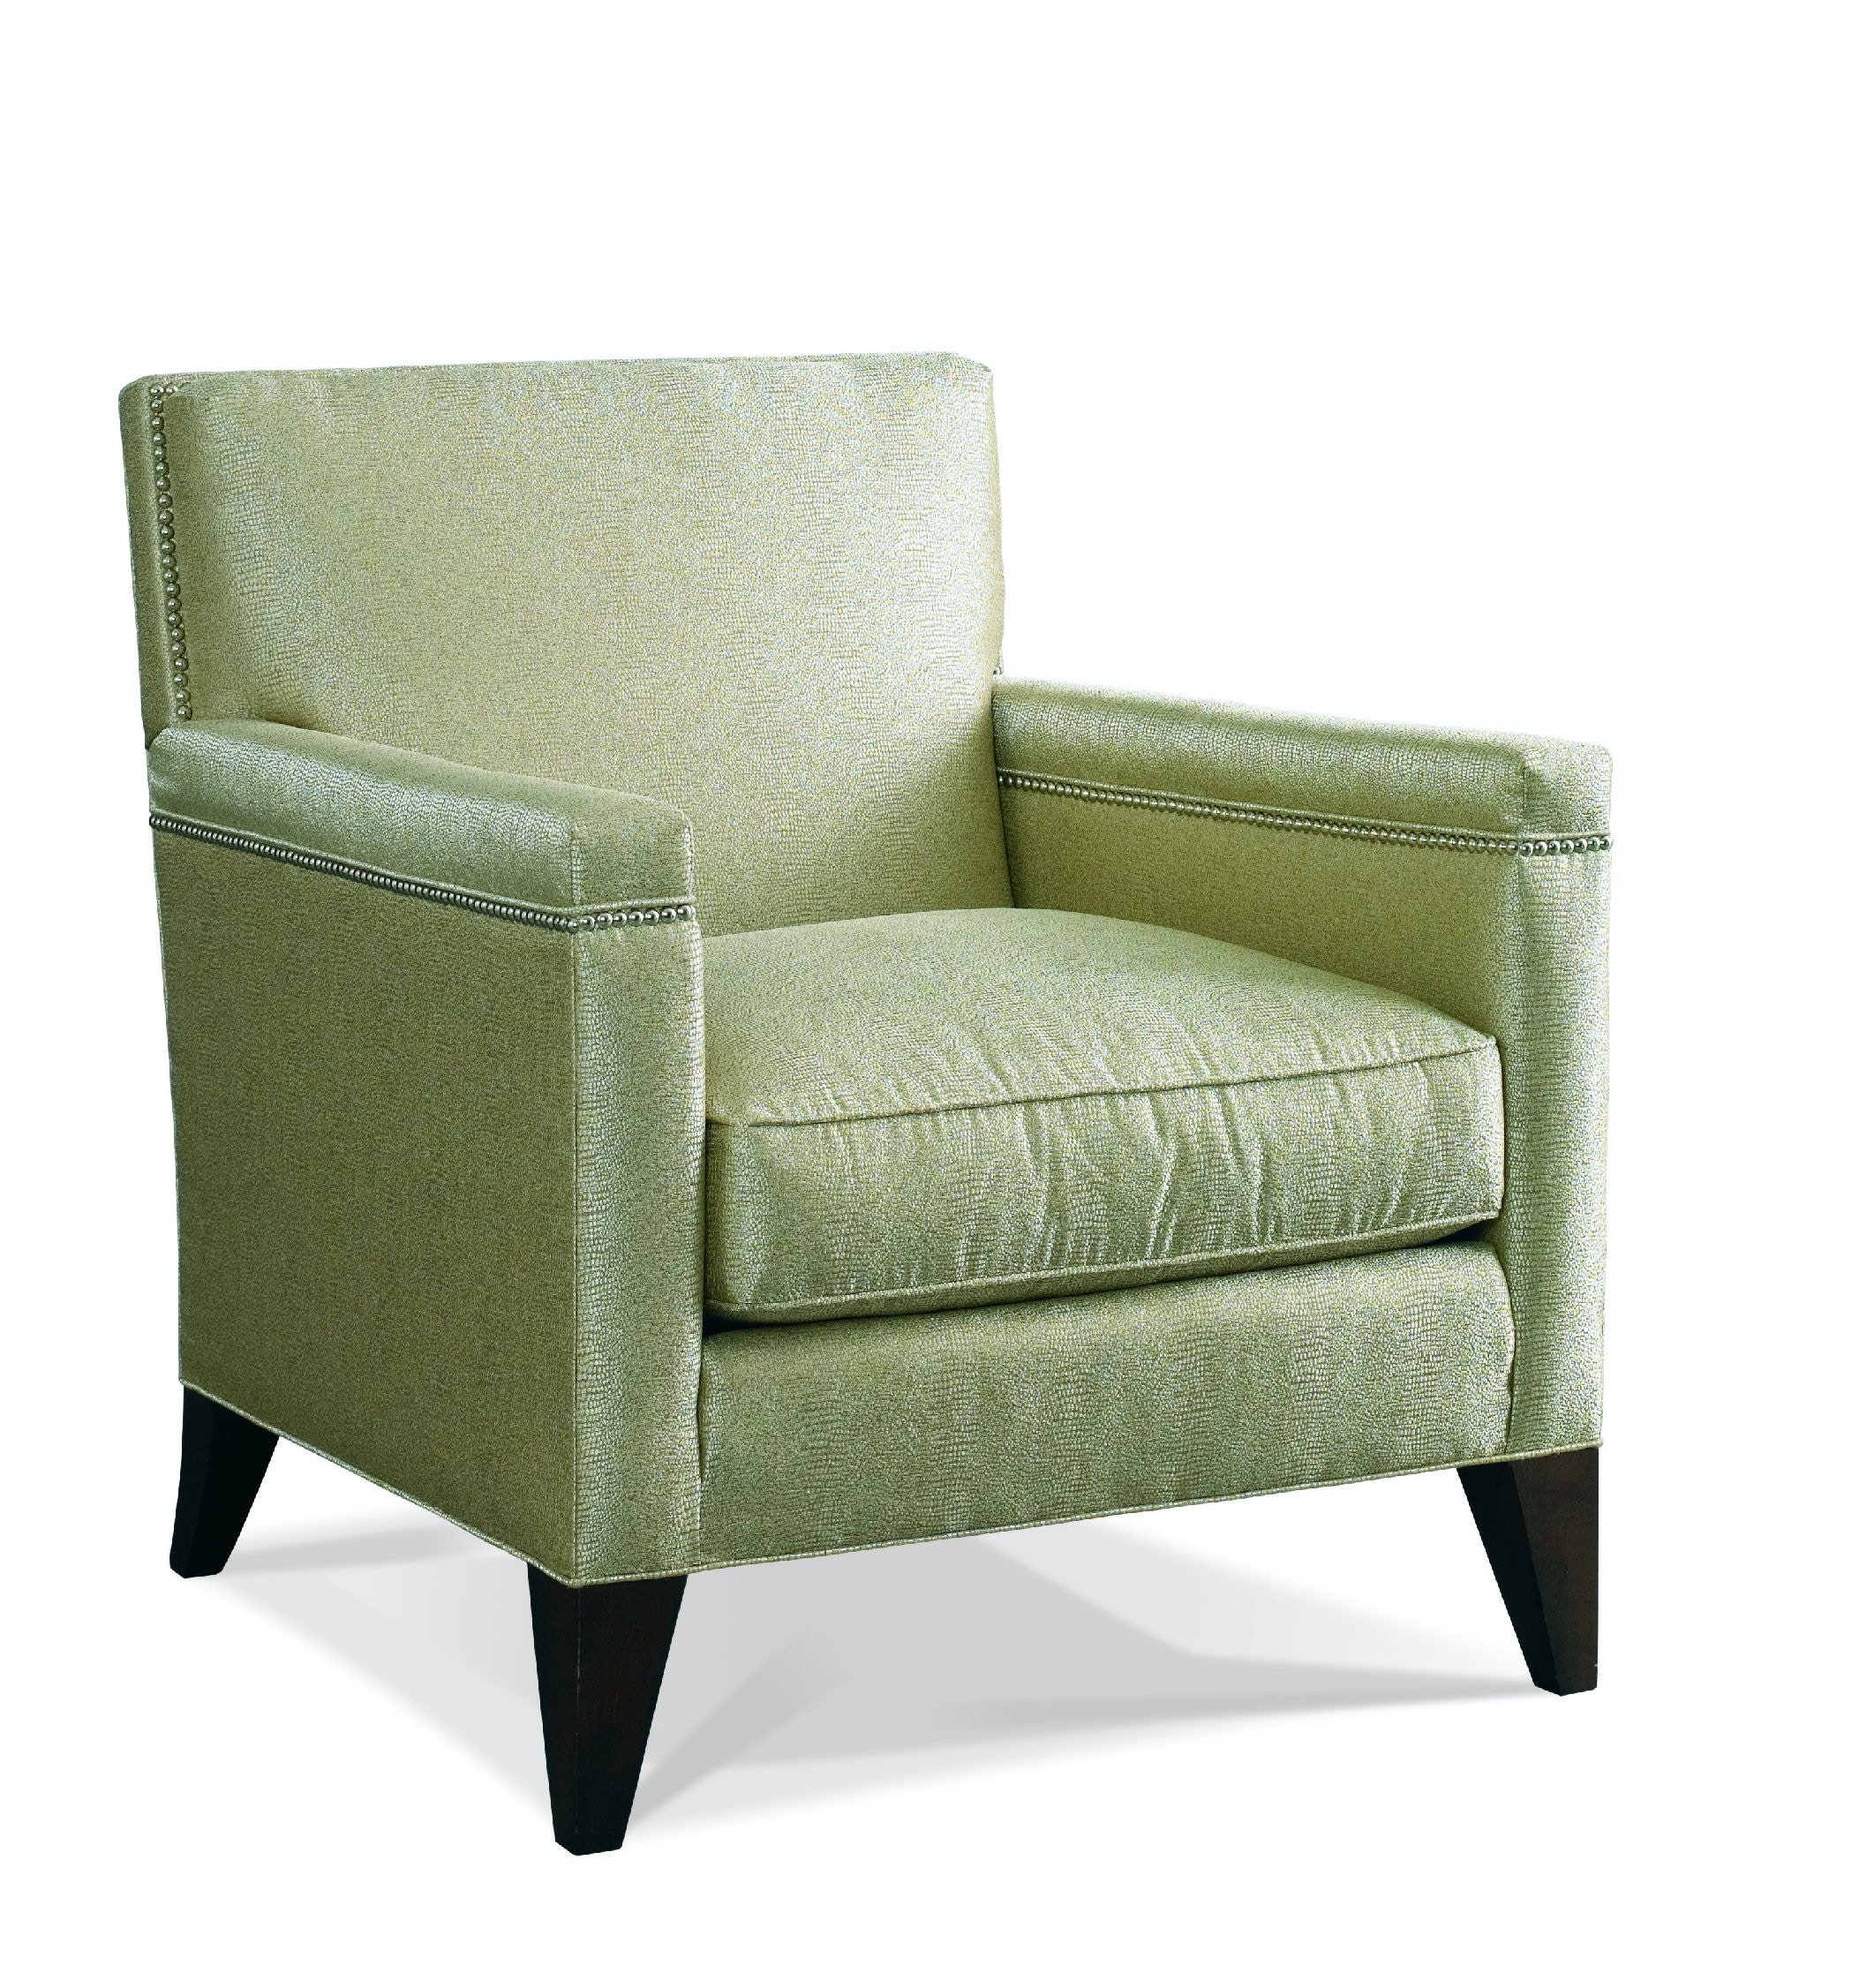 upholstered armchairs living room hickory white living room upholstered arm chair 4234 01 14891